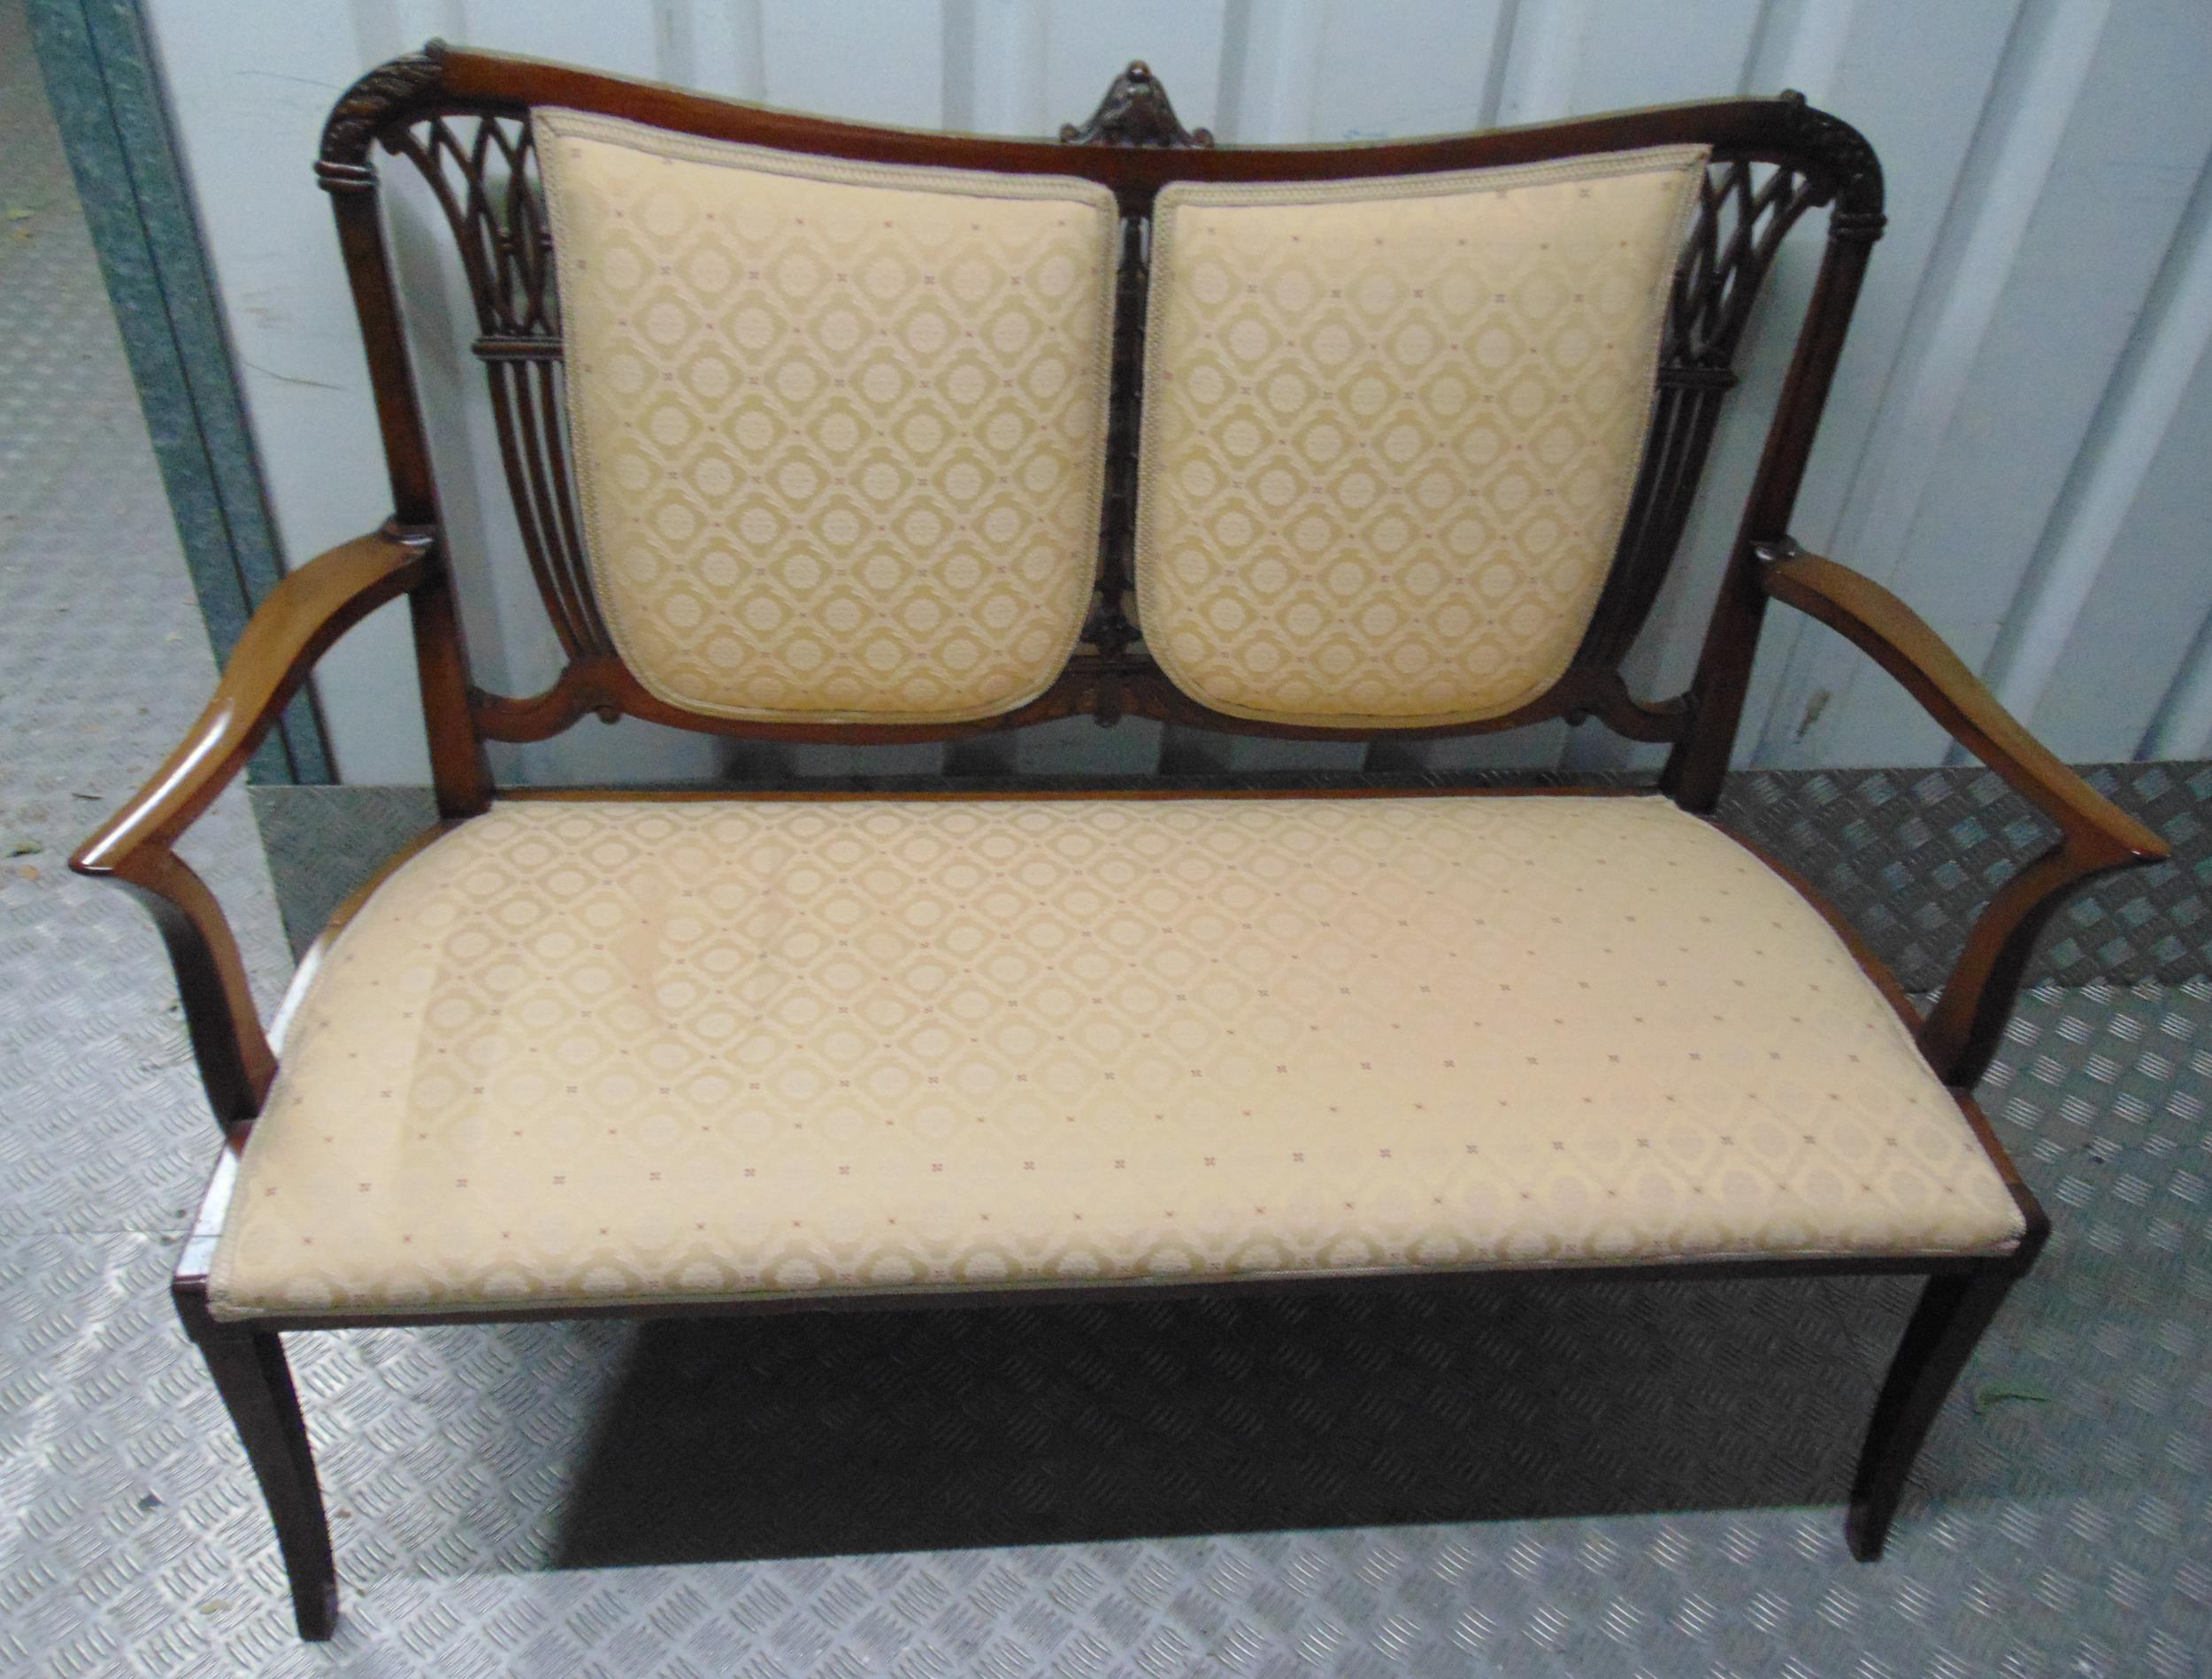 An Edwardian mahogany upholstered settle with scrolling arms and pierced back on four cabriole legs